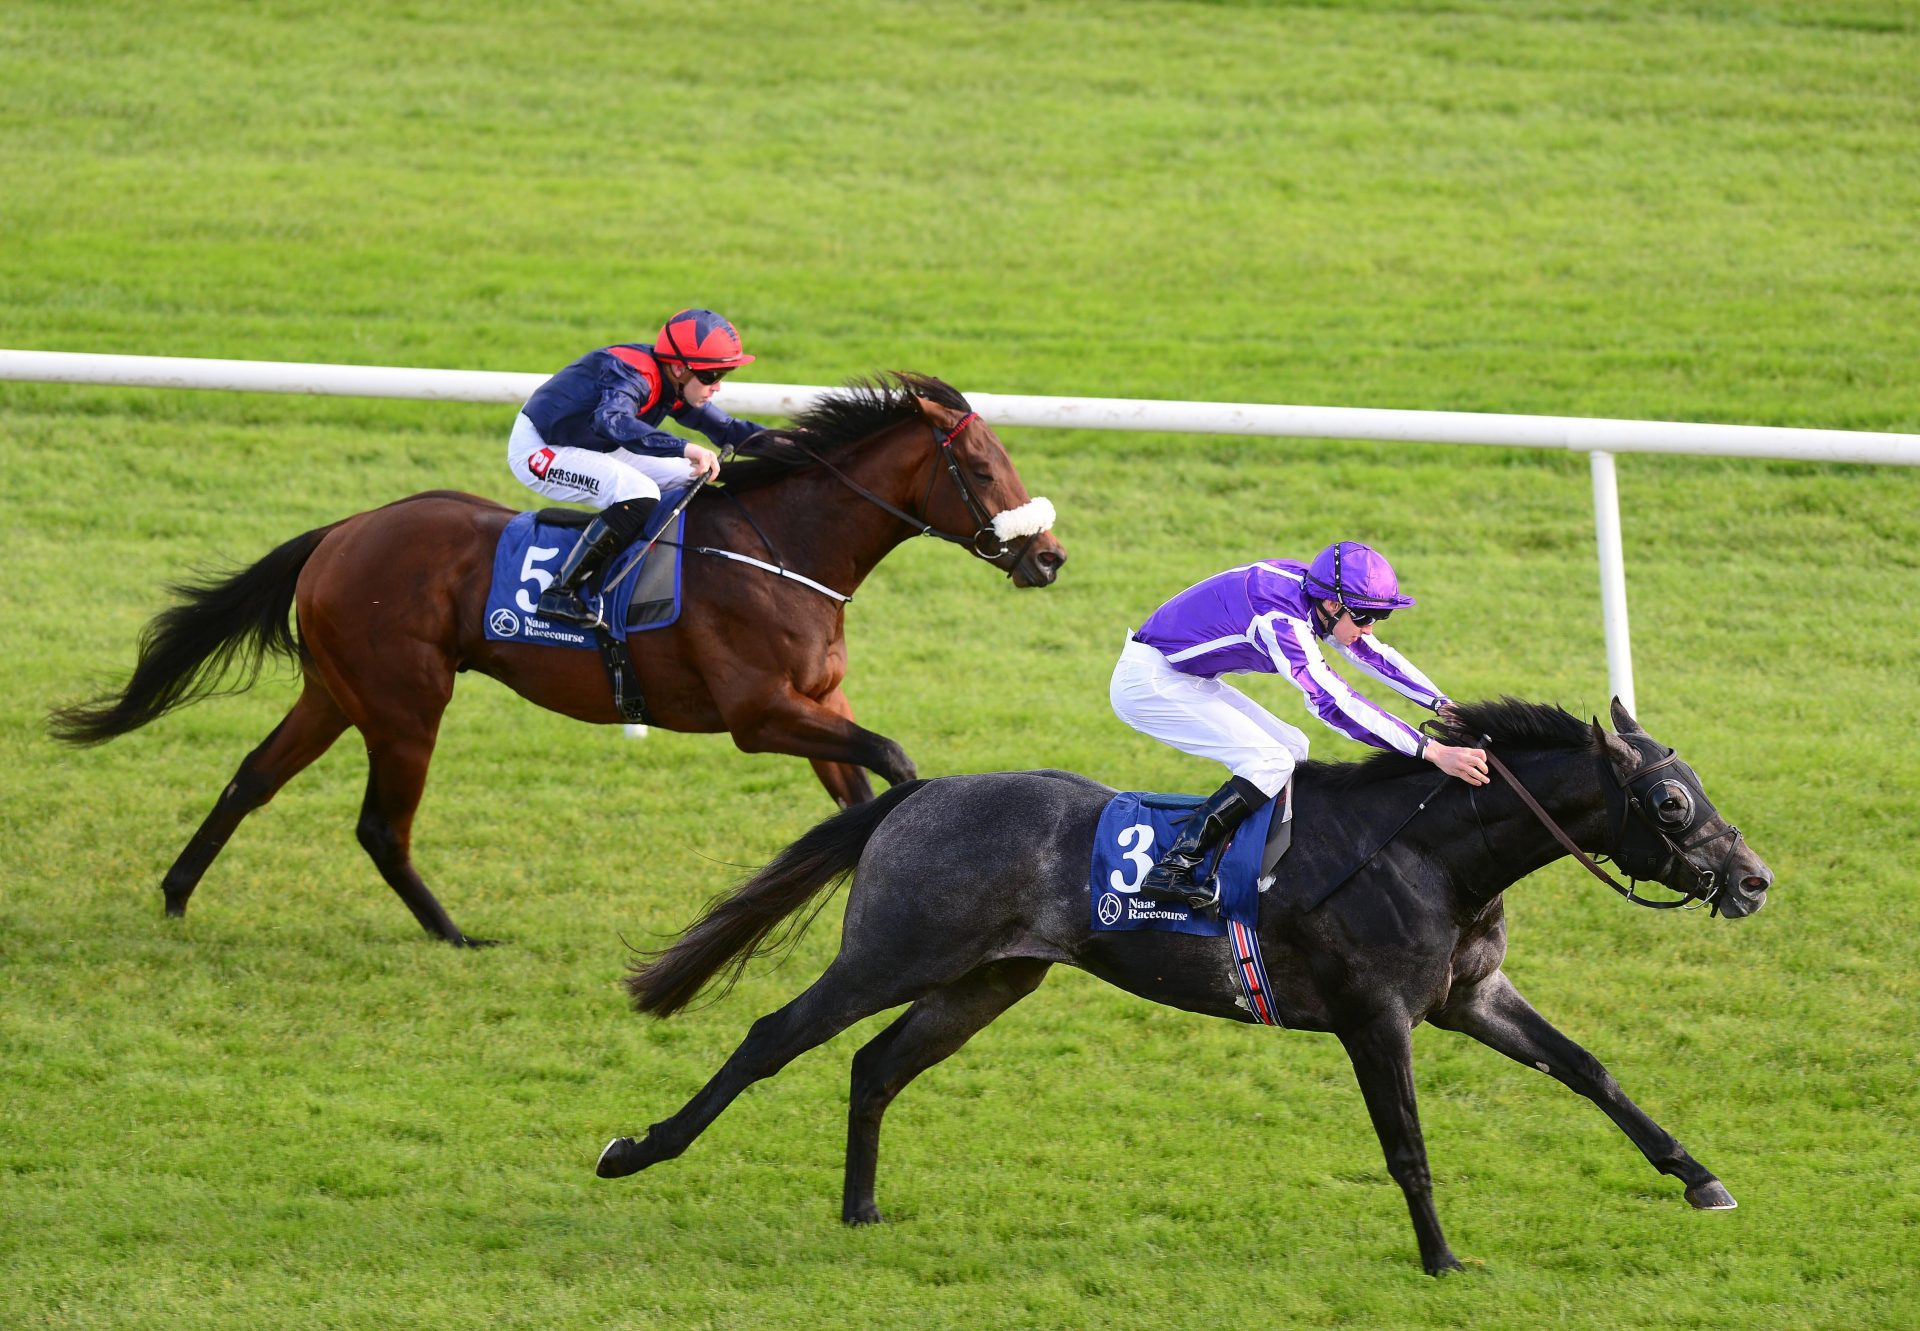 Hong Kong (American Pharoah) winning his maiden at Naas